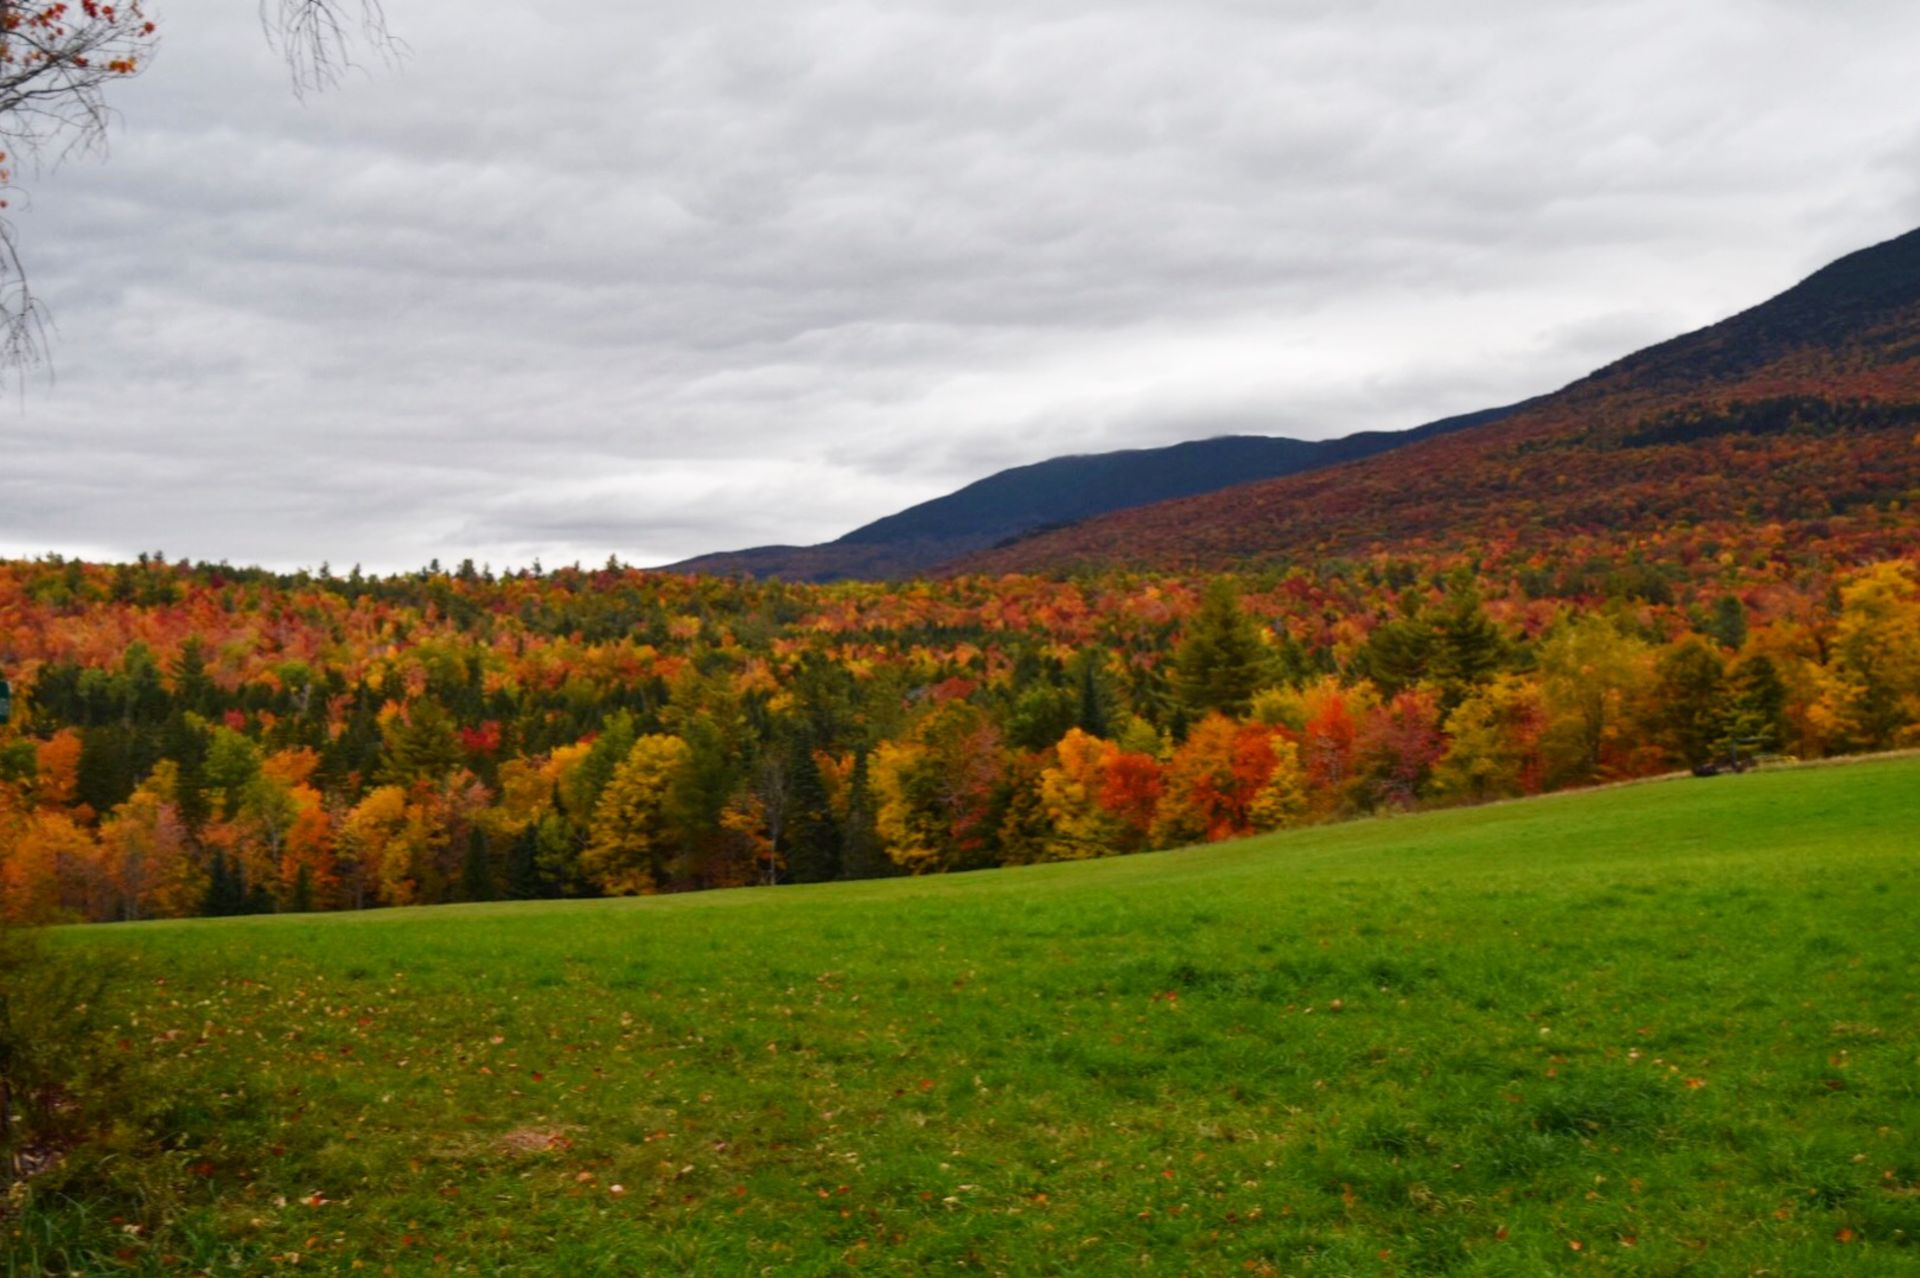 Fall in Vermont!